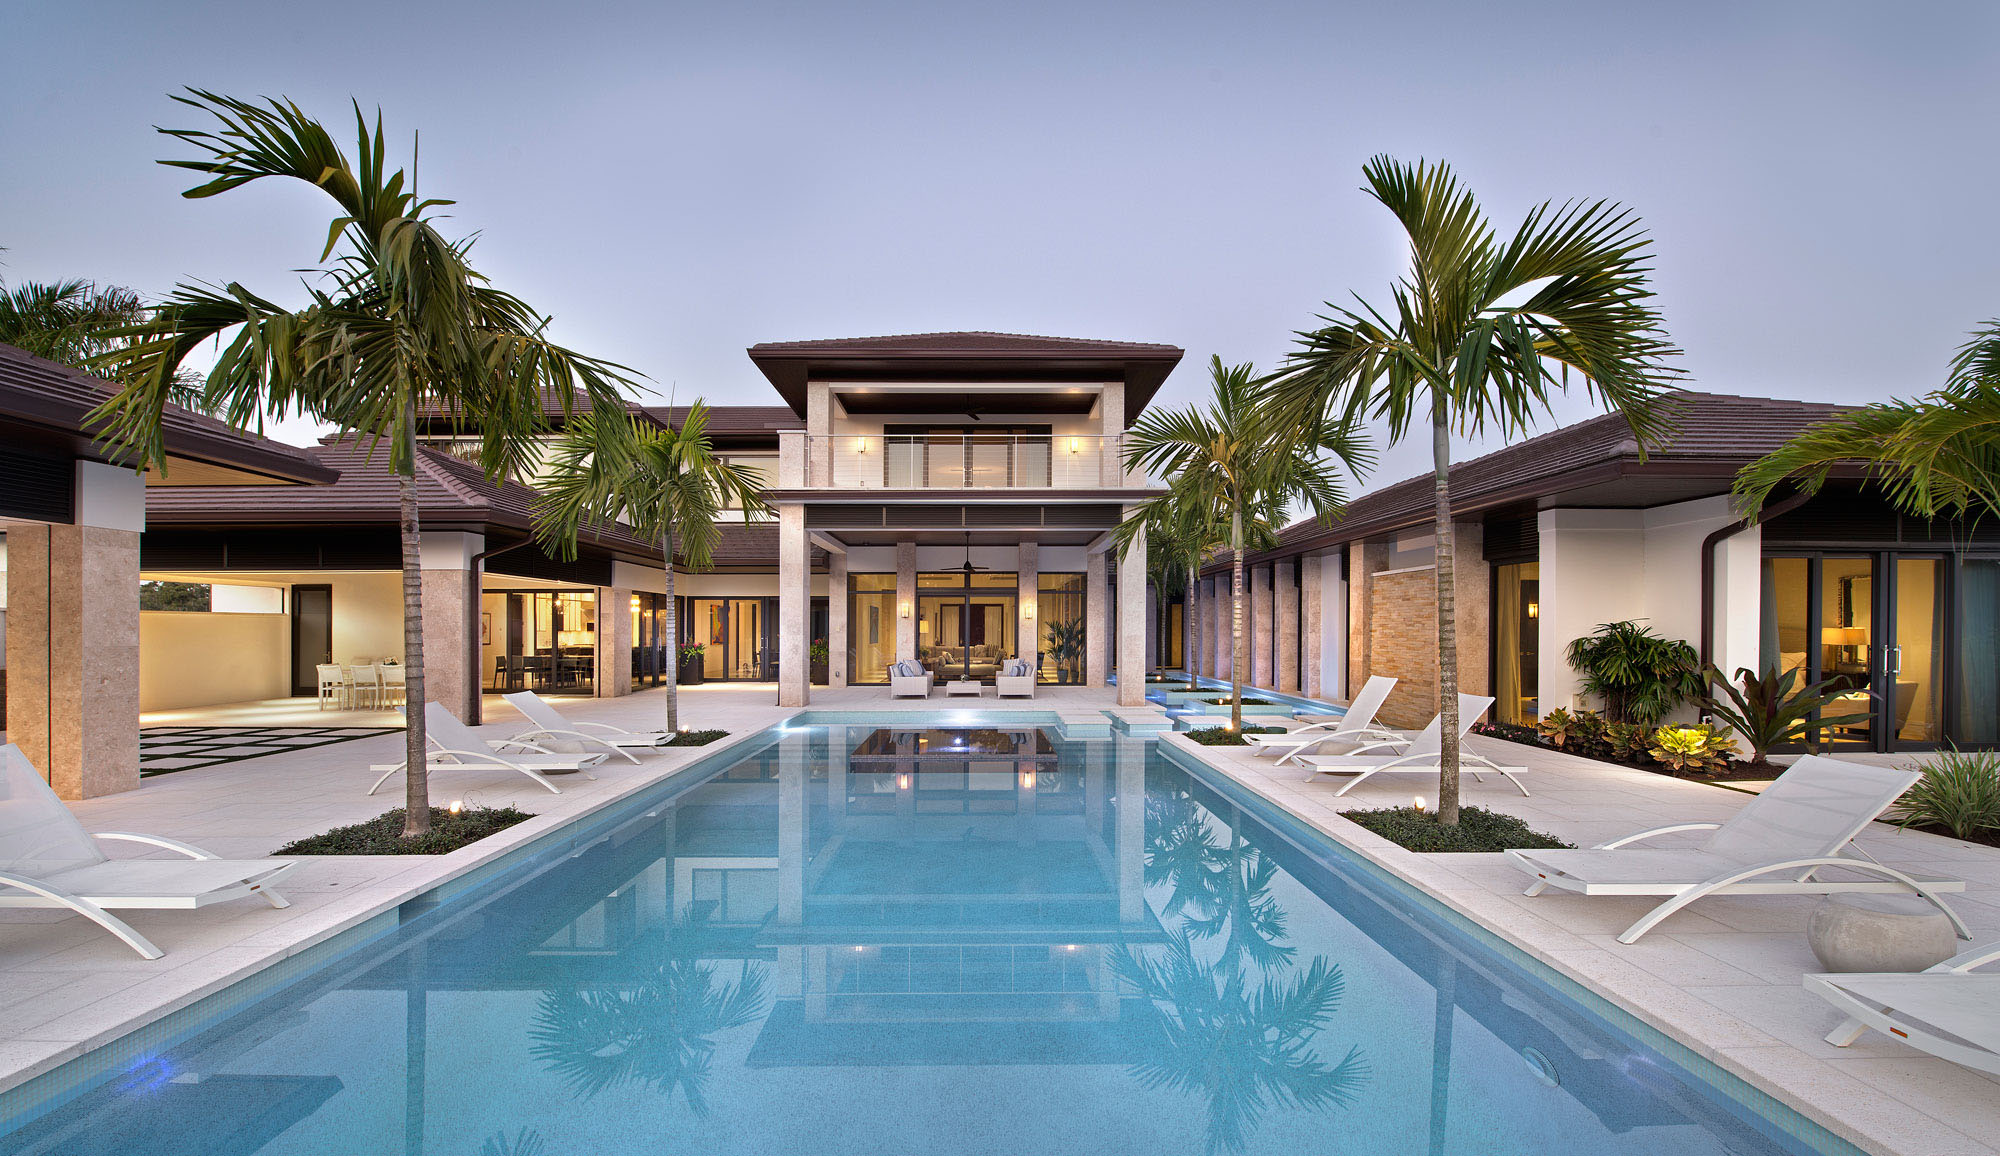 Contemporary luxury home with swimming pool